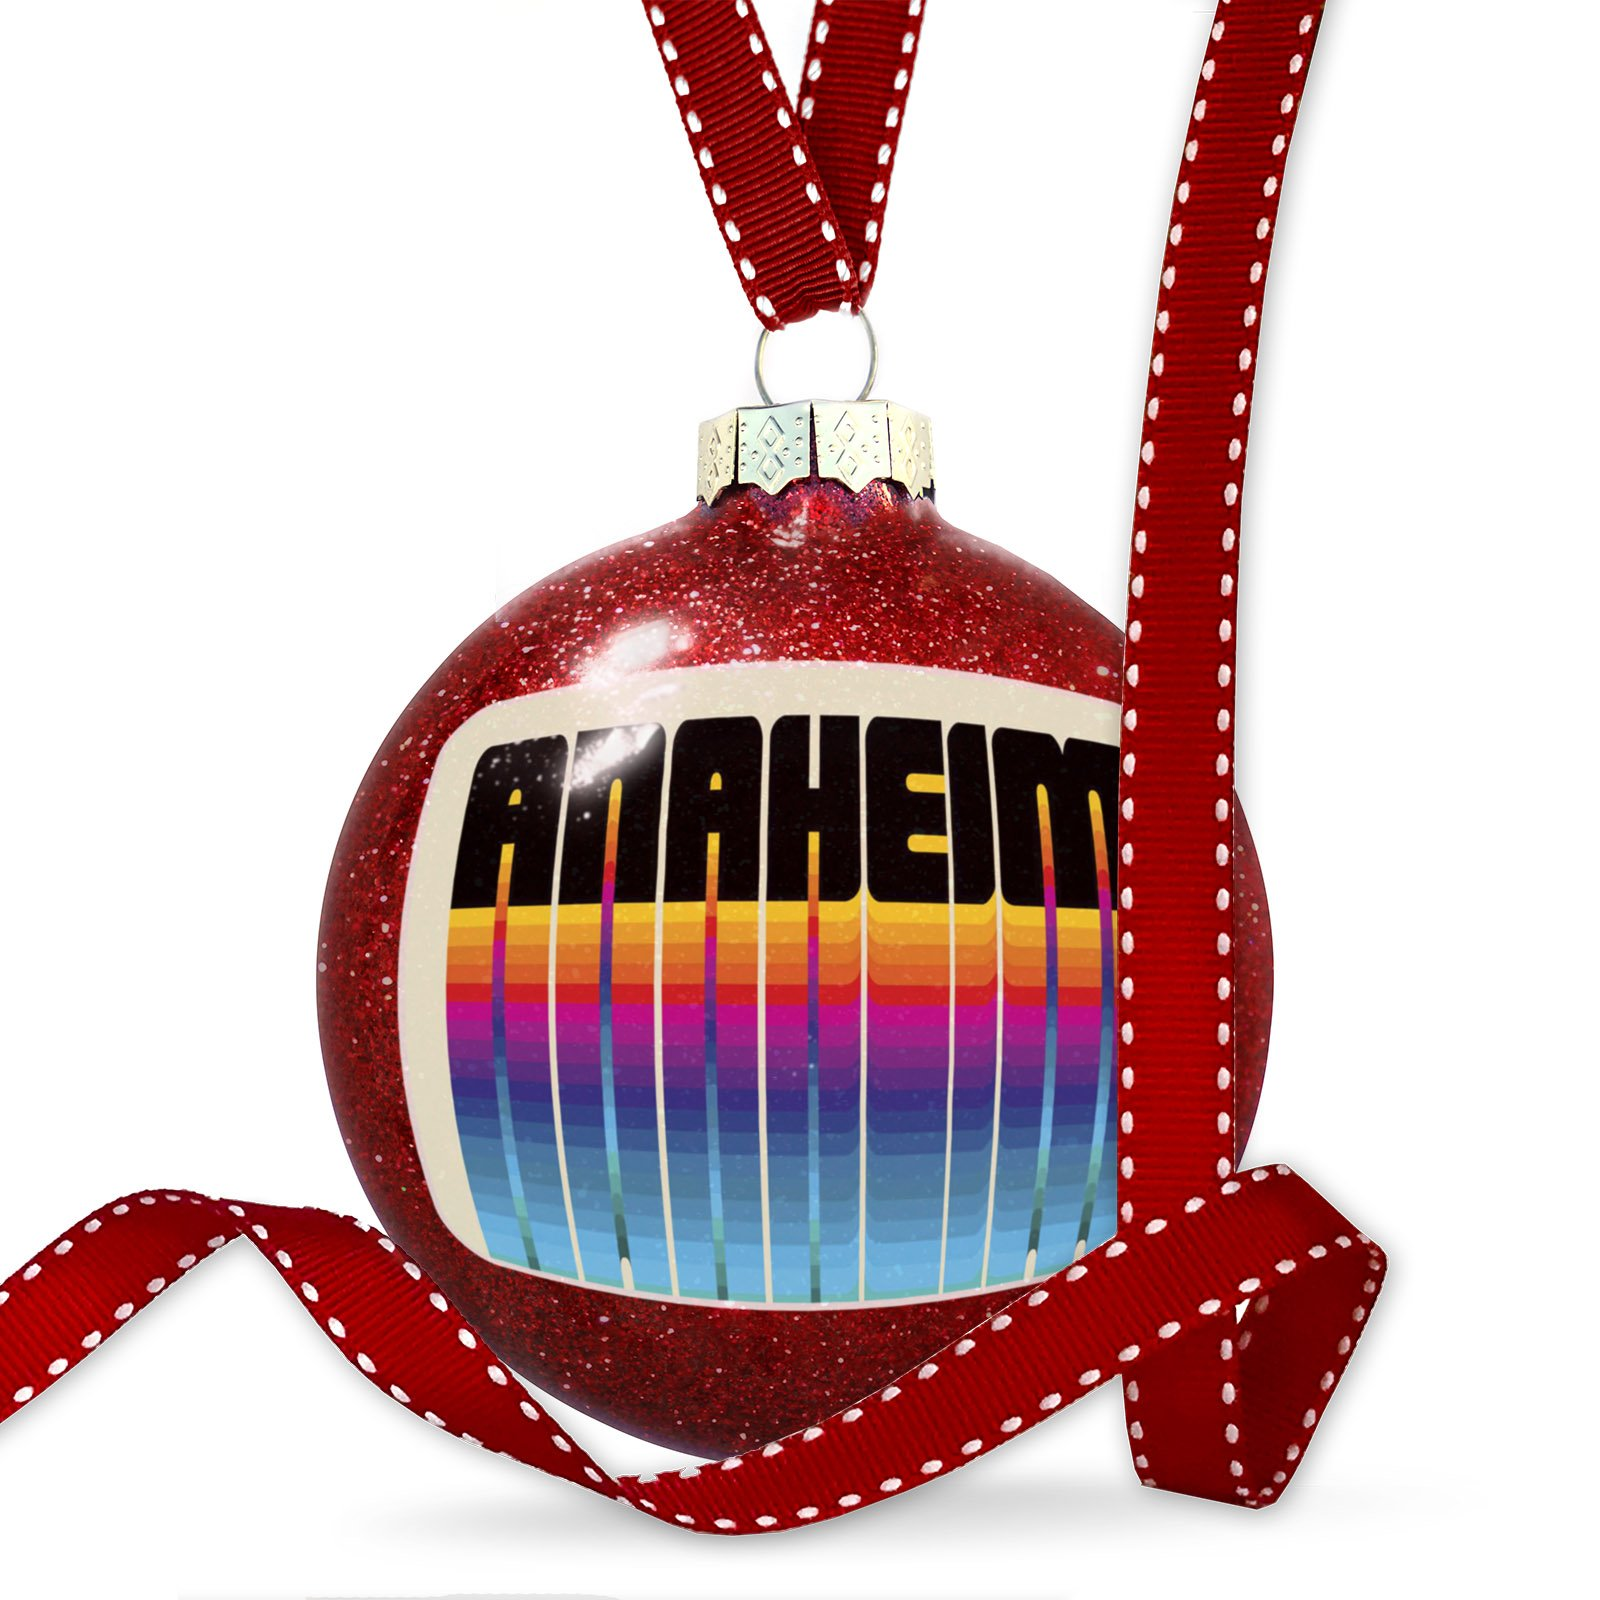 Christmas Decoration Retro Cites States Countries Anaheim Ornament by NEONBLOND (Image #1)